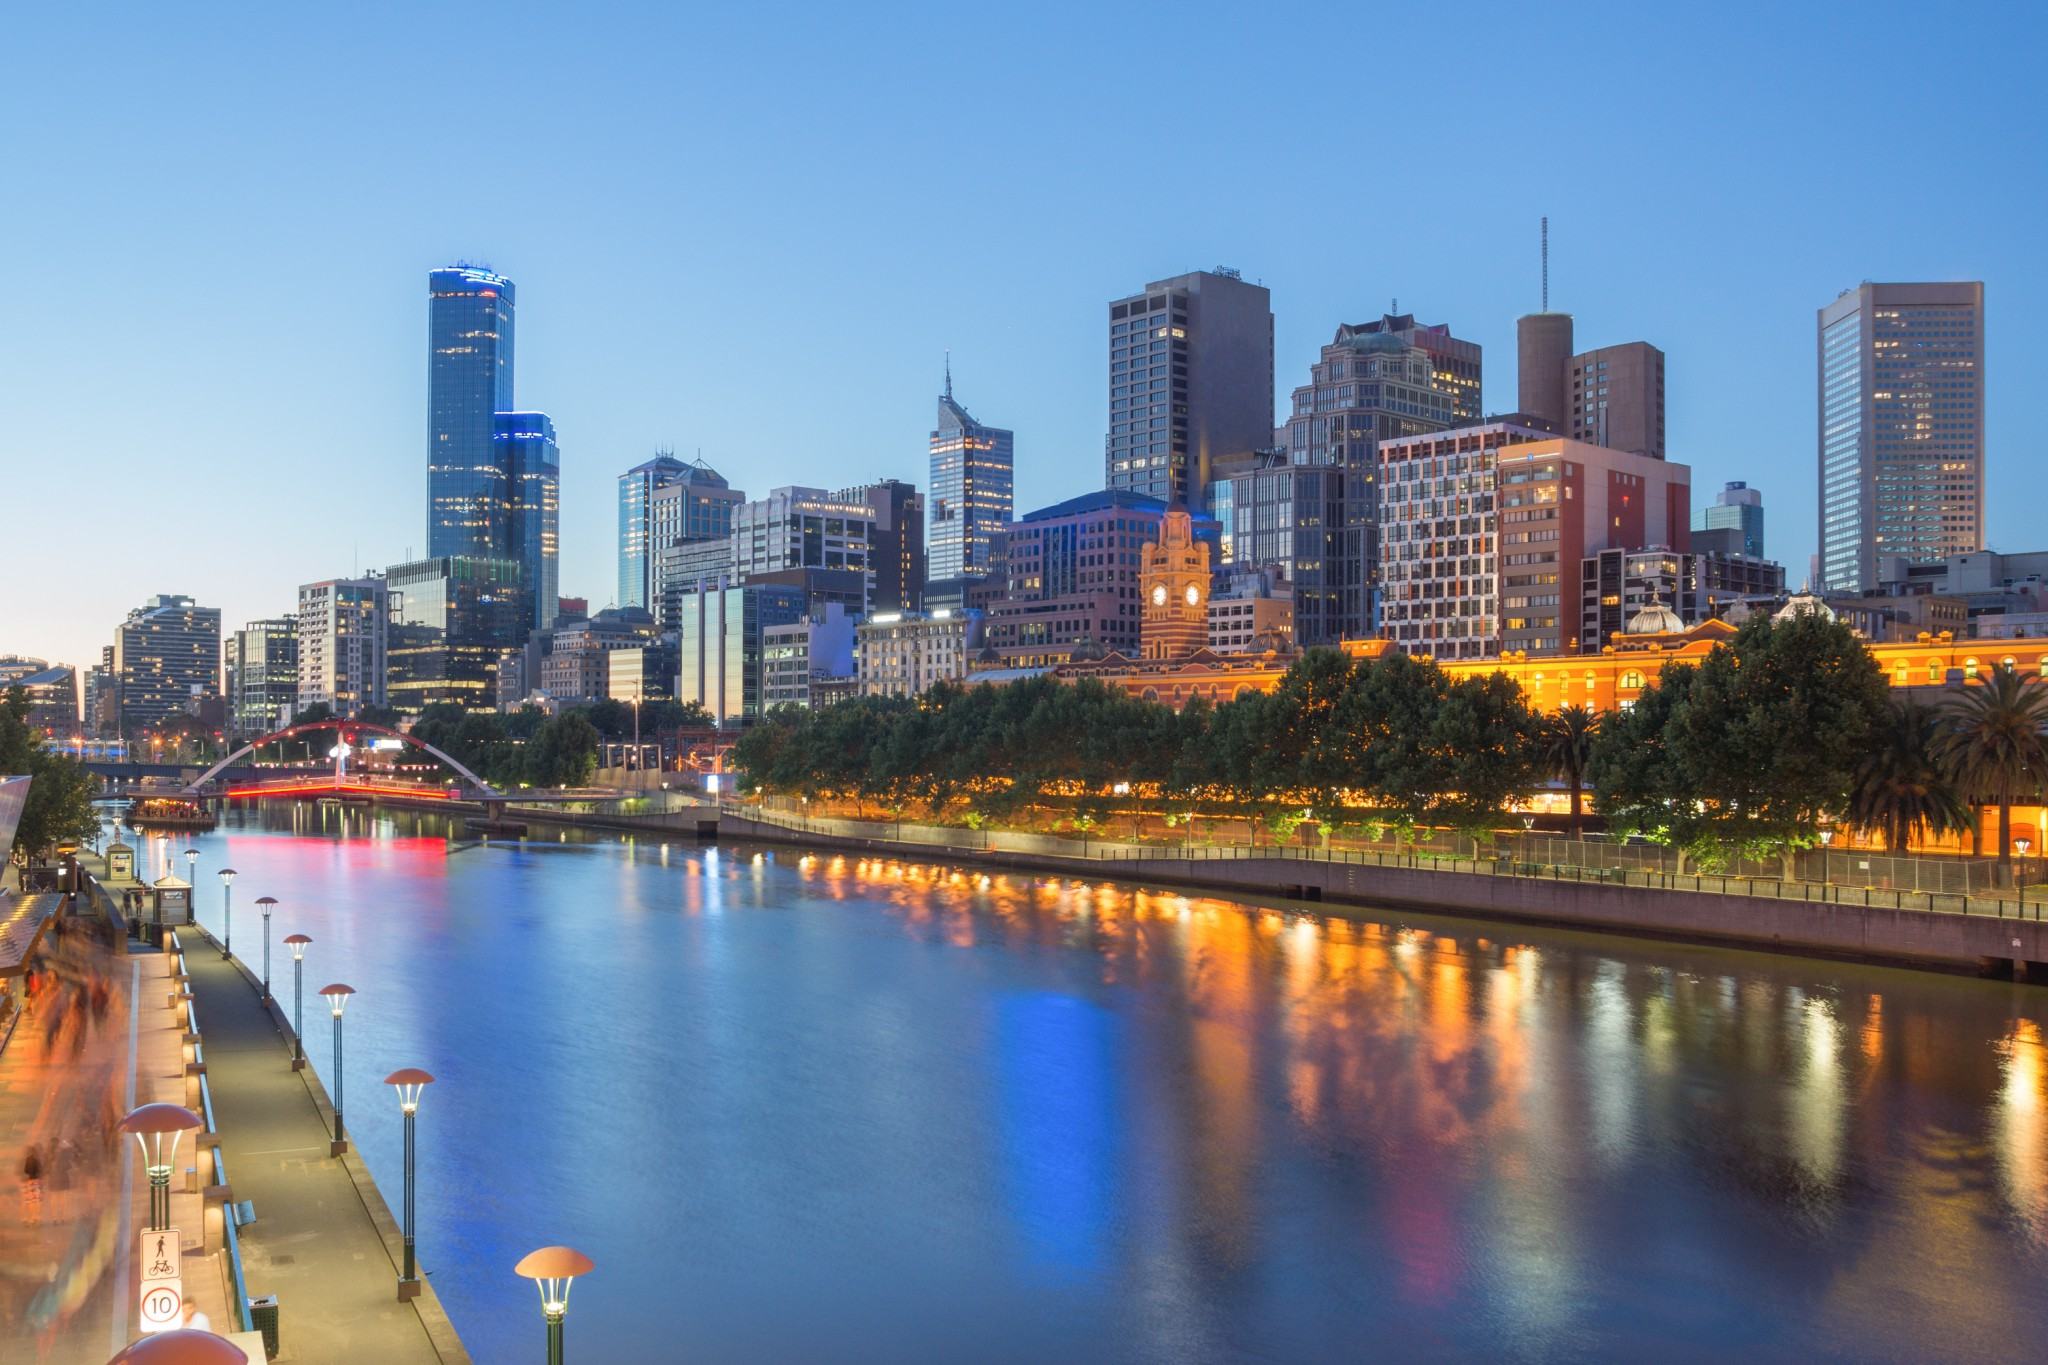 Melbourne-city-and-the-Yarra-river-at-night-e1435733635380